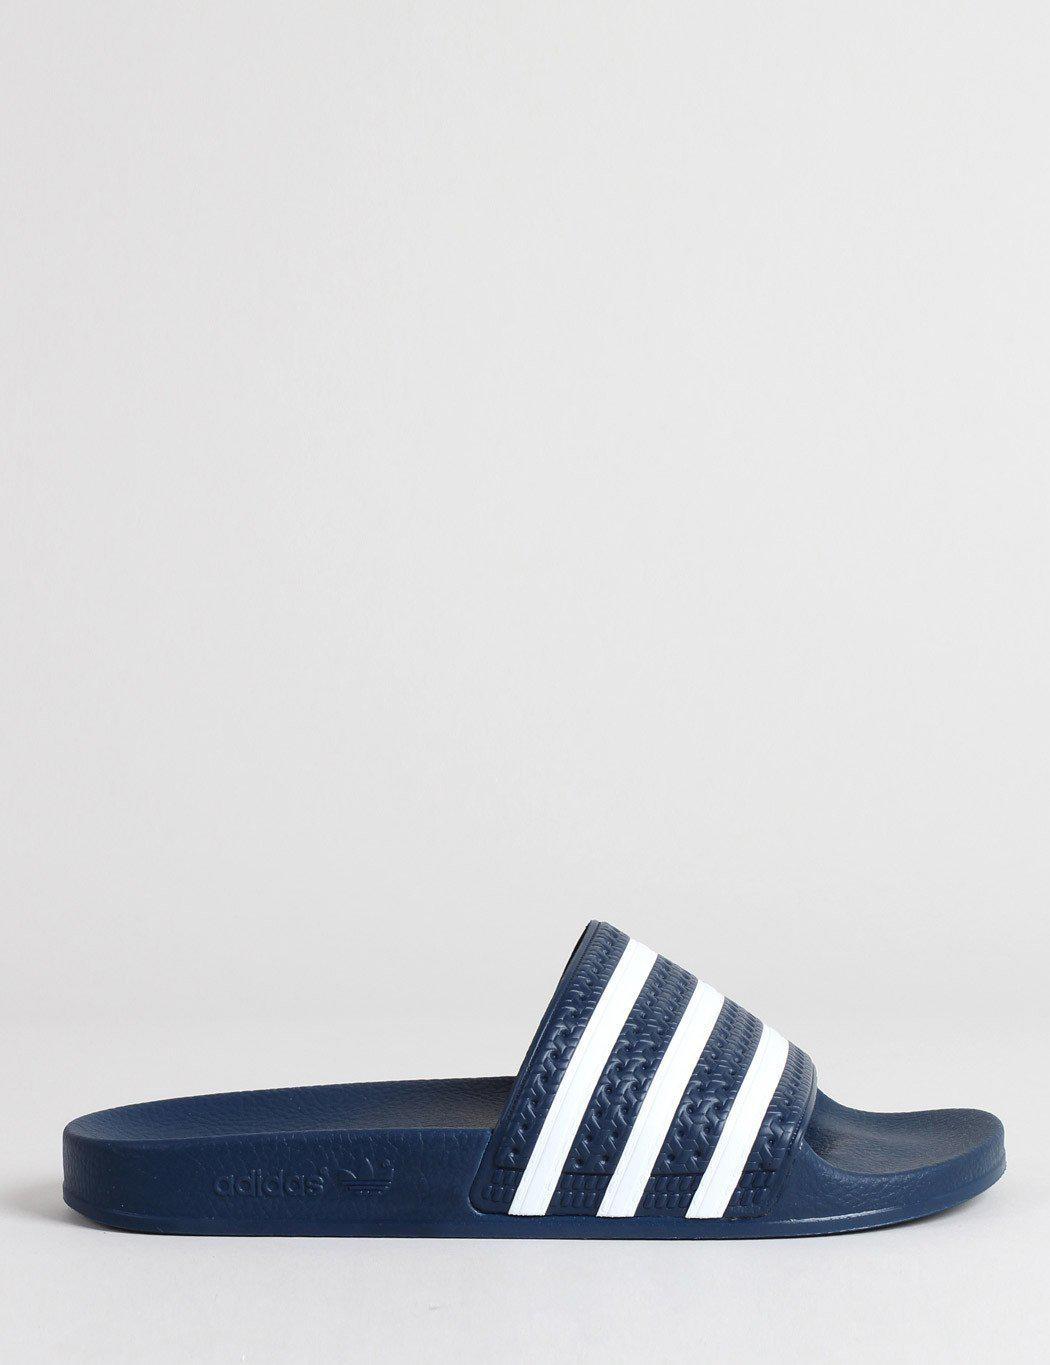 13c35d06c632 Adidas Originals Adilette Textured-rubber Slides in Blue for Men ...